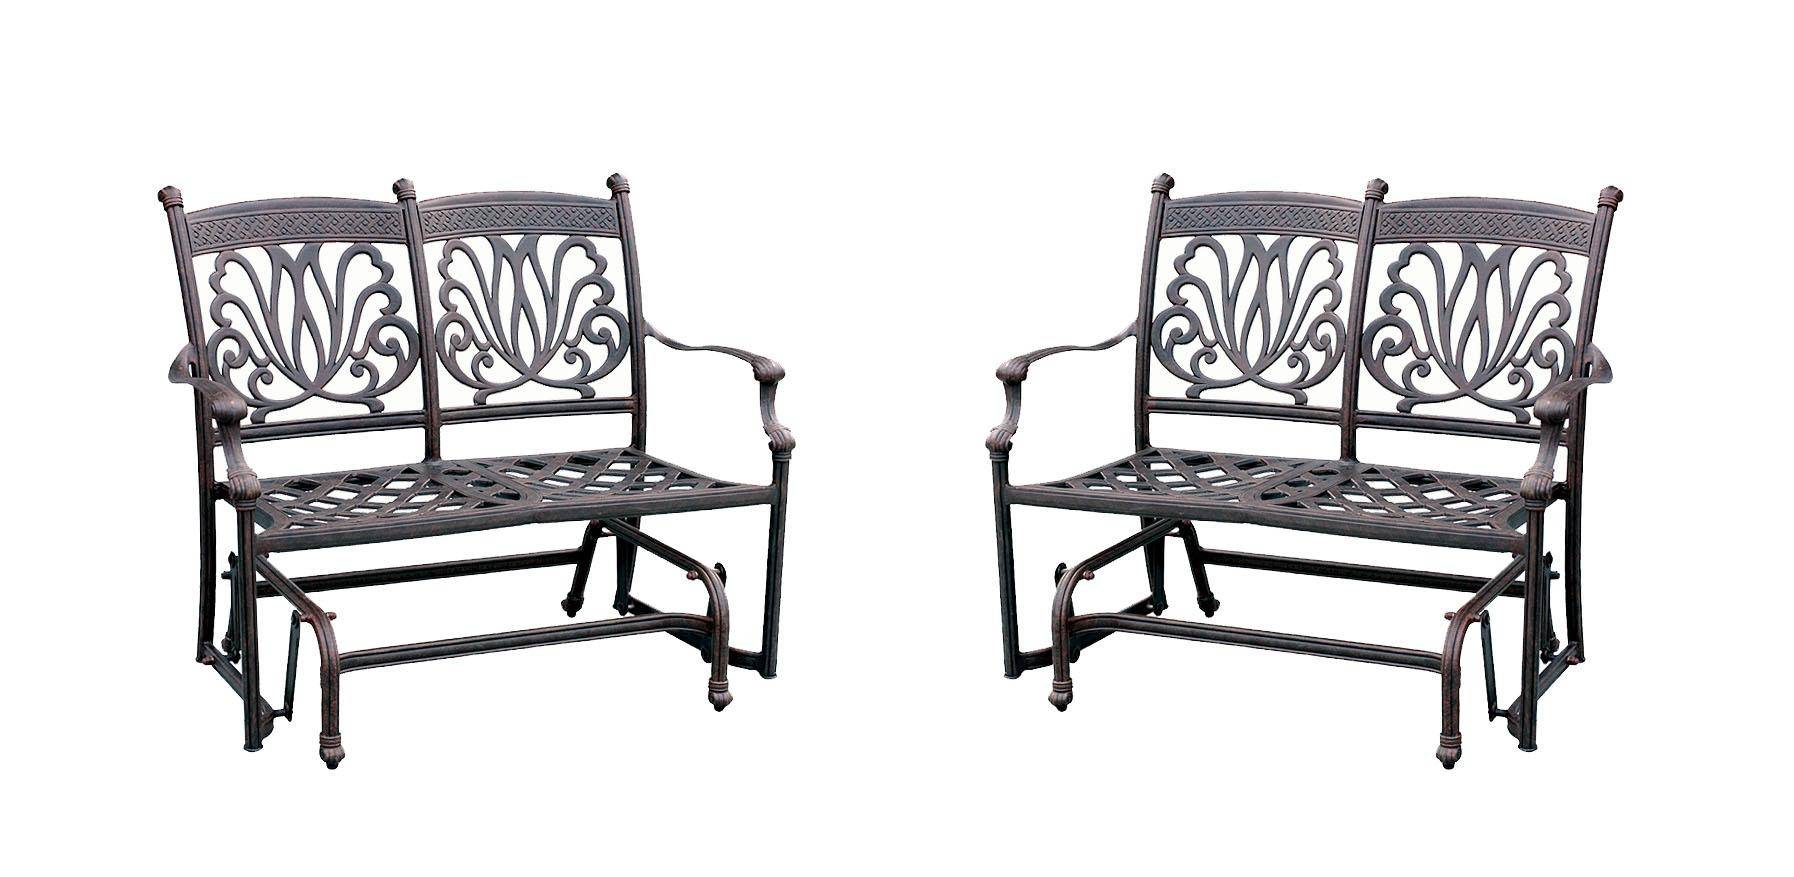 Ariana Cast Aluminum Bench Loveseat Glider W/ Sunbrella Inside Loveseat Glider Benches With Cushions (View 10 of 25)